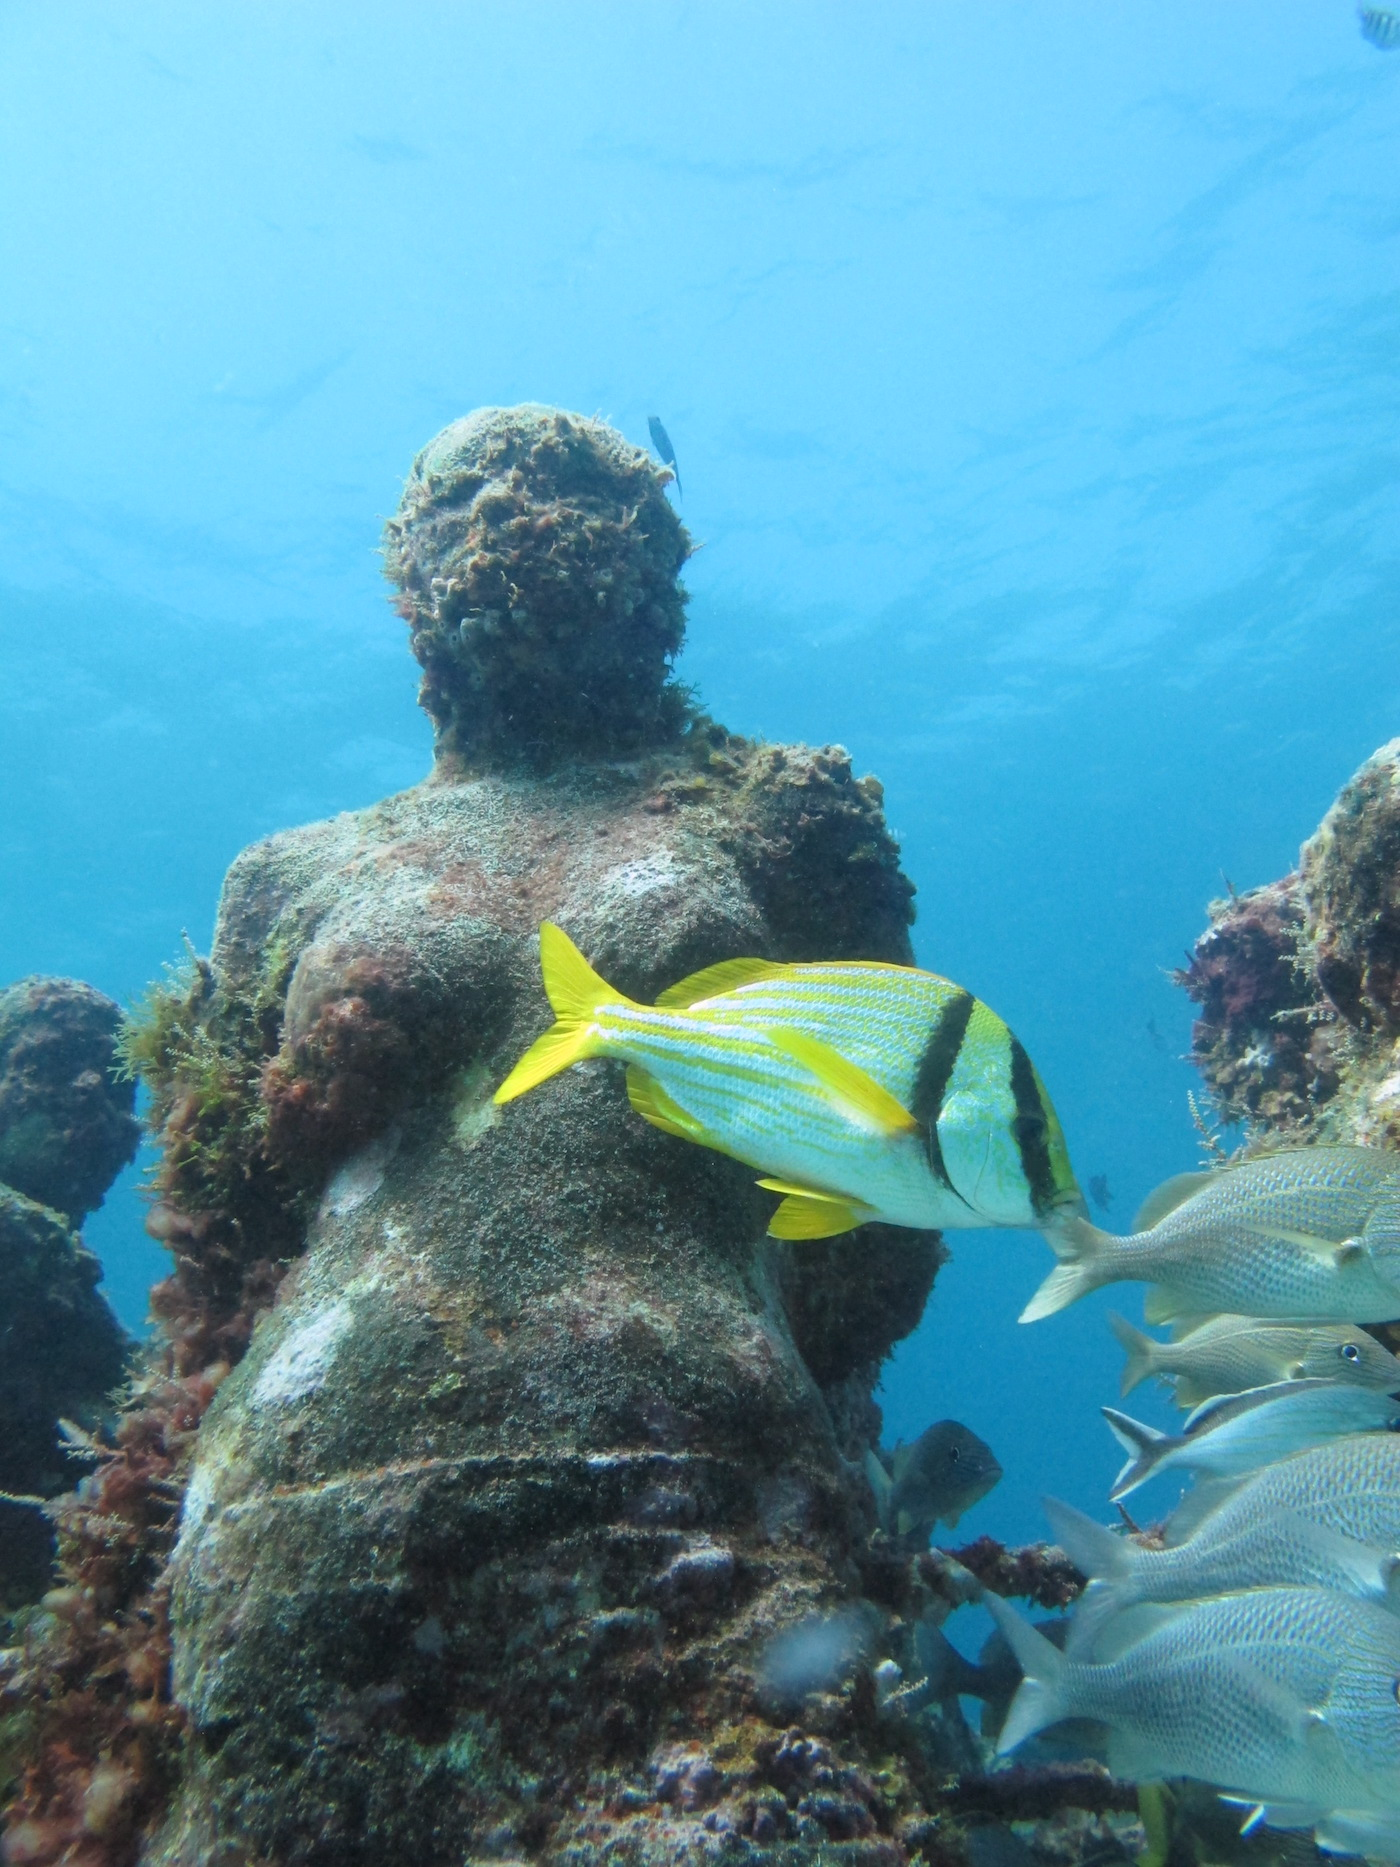 MUSA-Underwater-Museum-Snorkeling-Scuba-Diving-Tours-Isla-Mujeres-Carey-Dive-Center-1